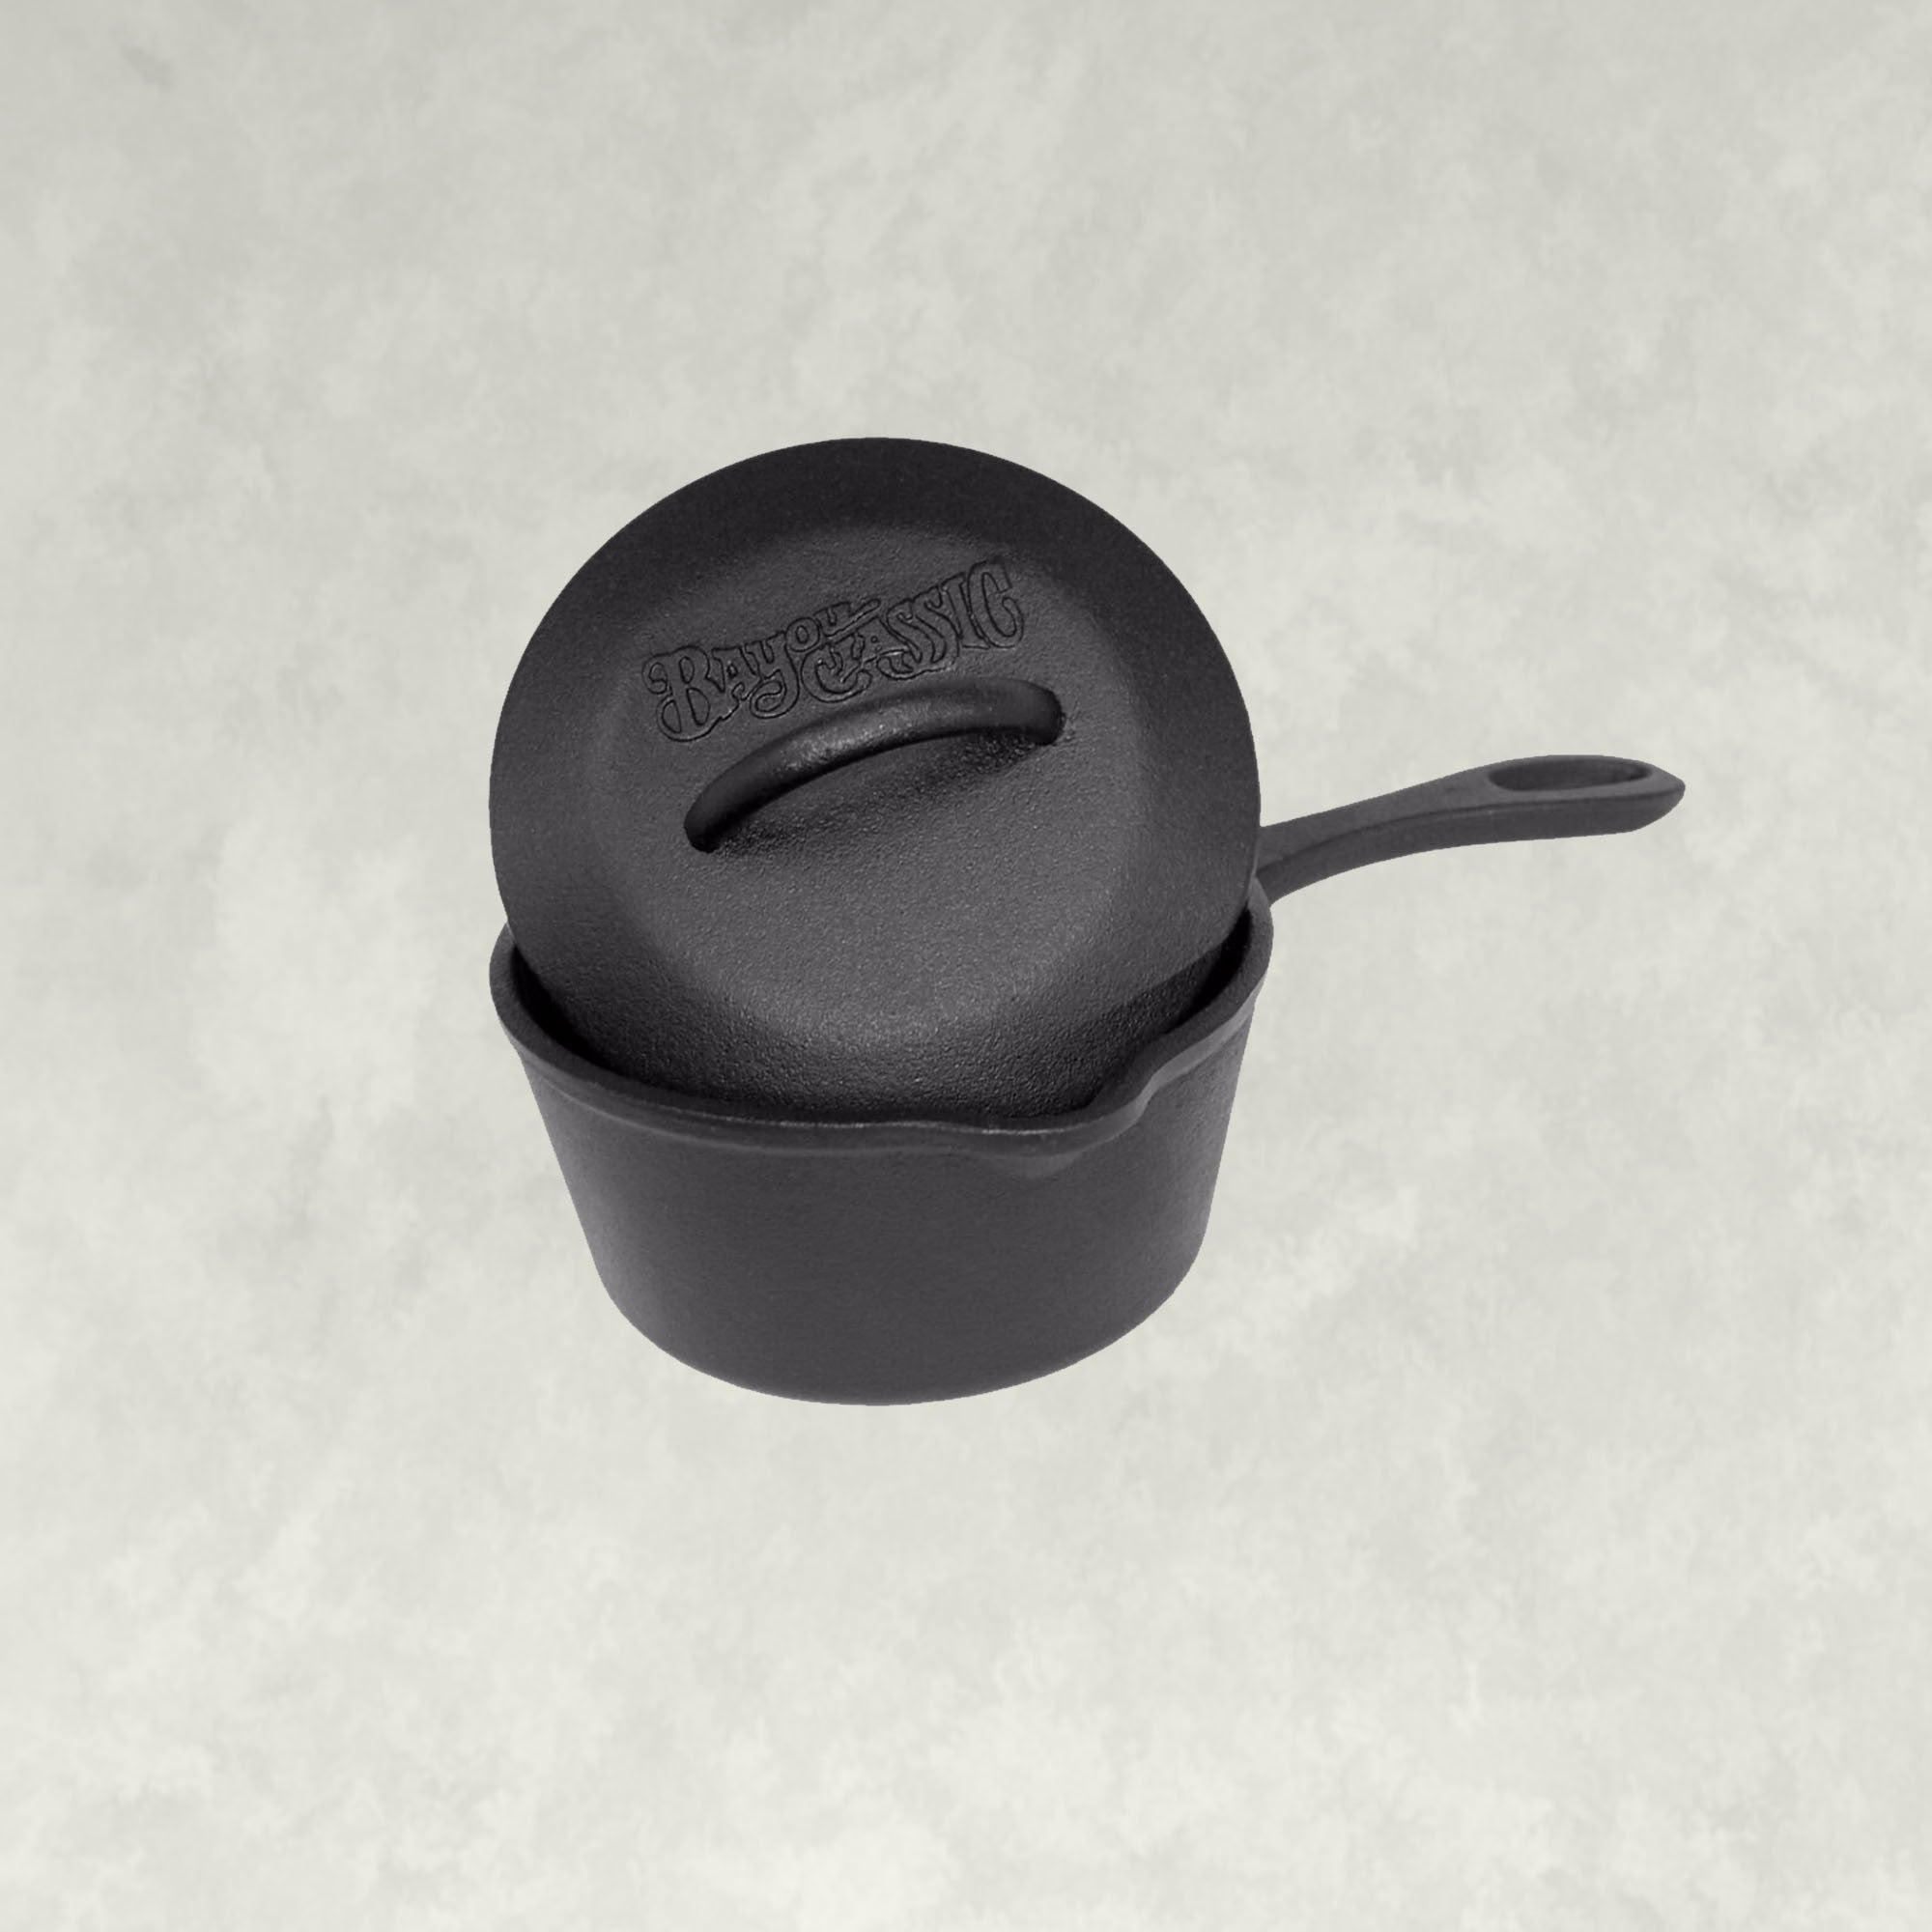 1-qt Cast Iron Sauce Pot